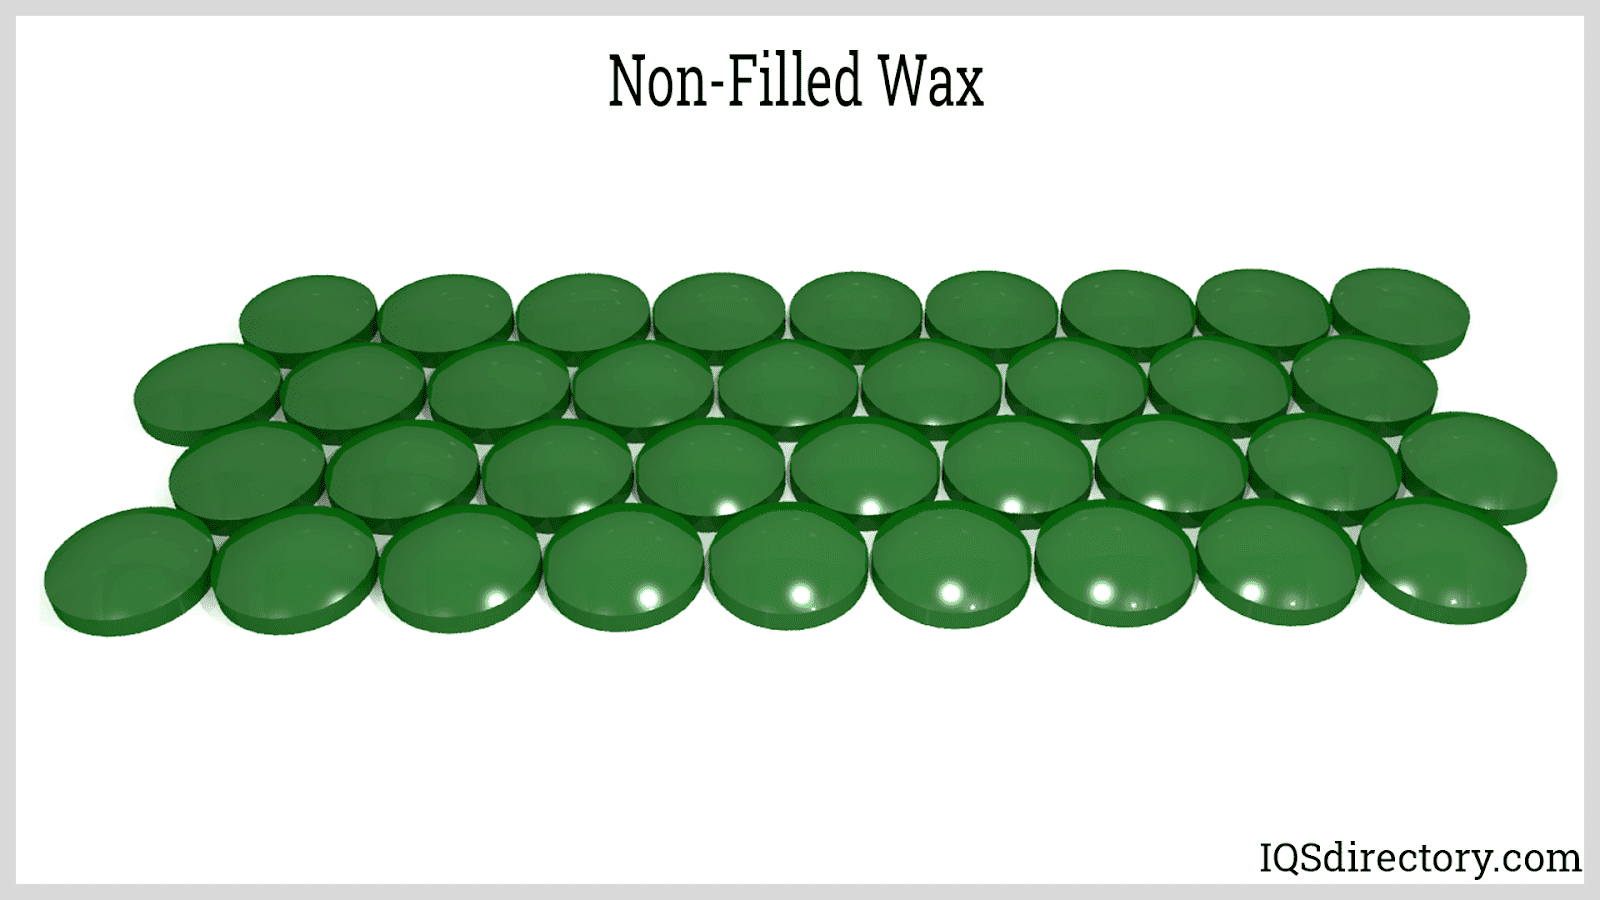 Non-Filled Wax